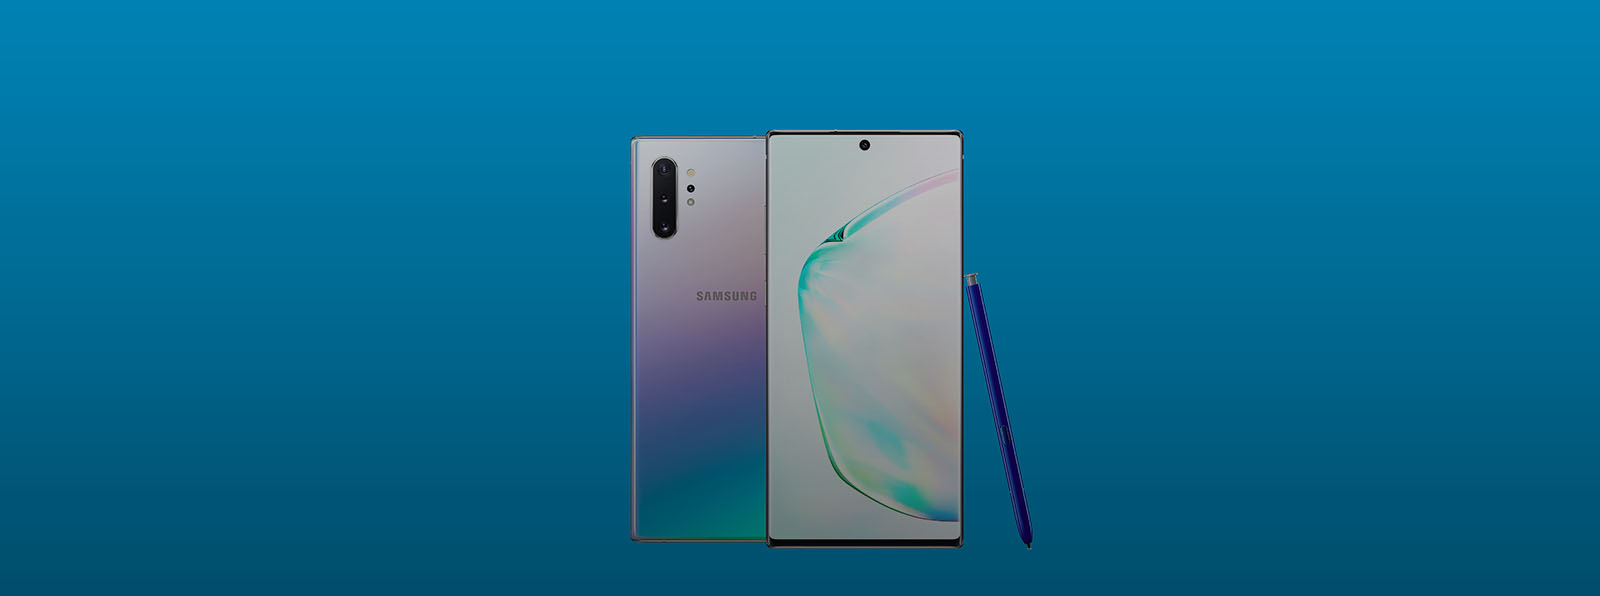 AT&T Releases Samsung Galaxy Note10 and Note10+